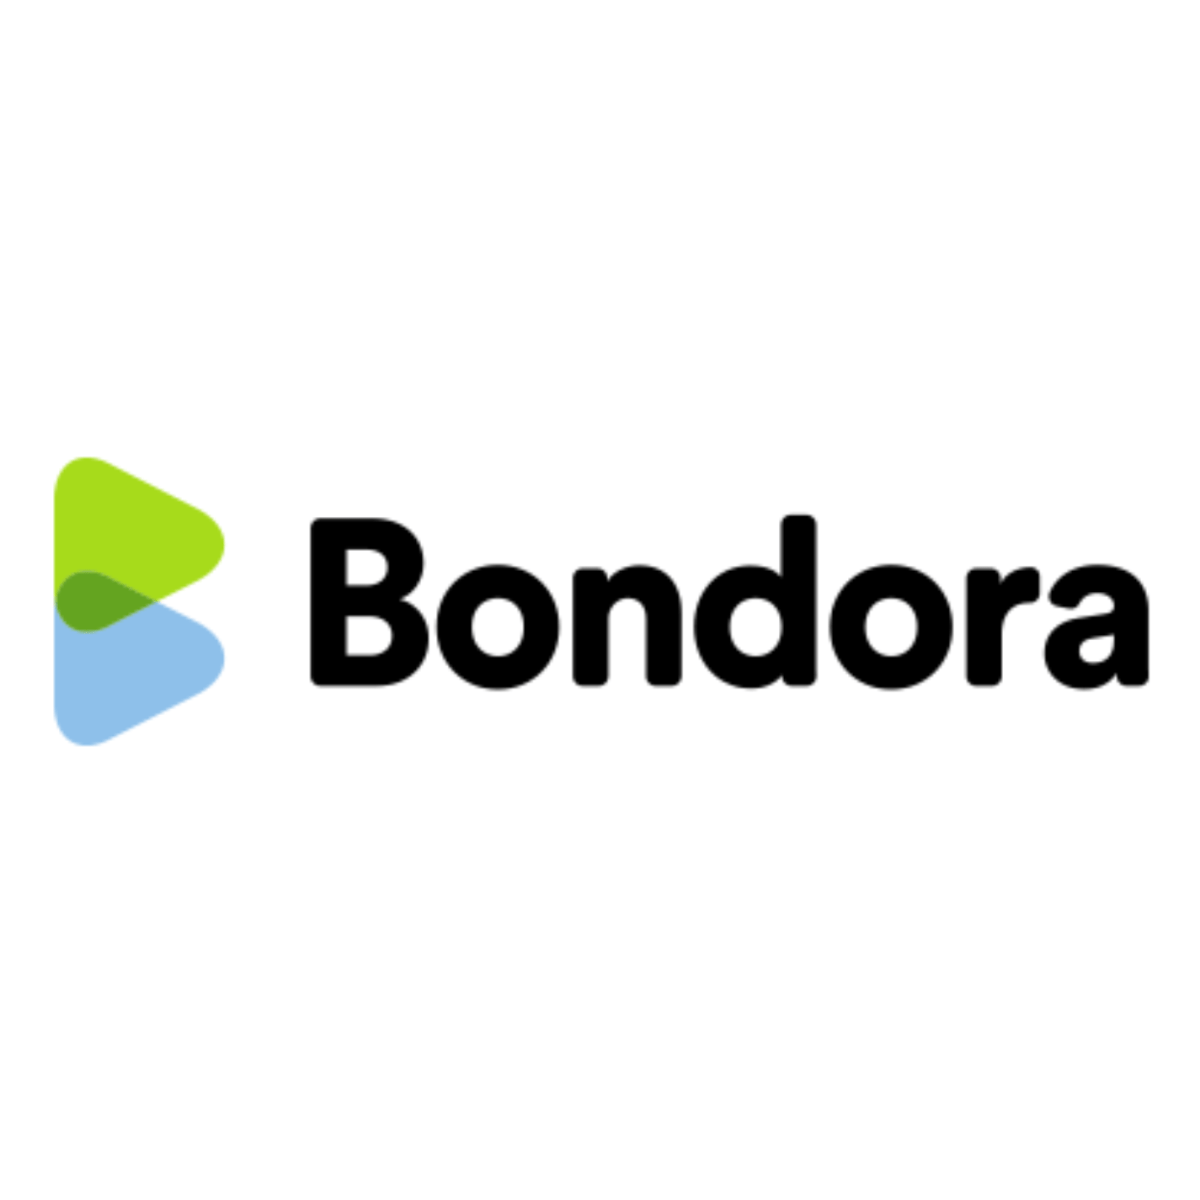 Bondora Logo @ Savings4Freedom